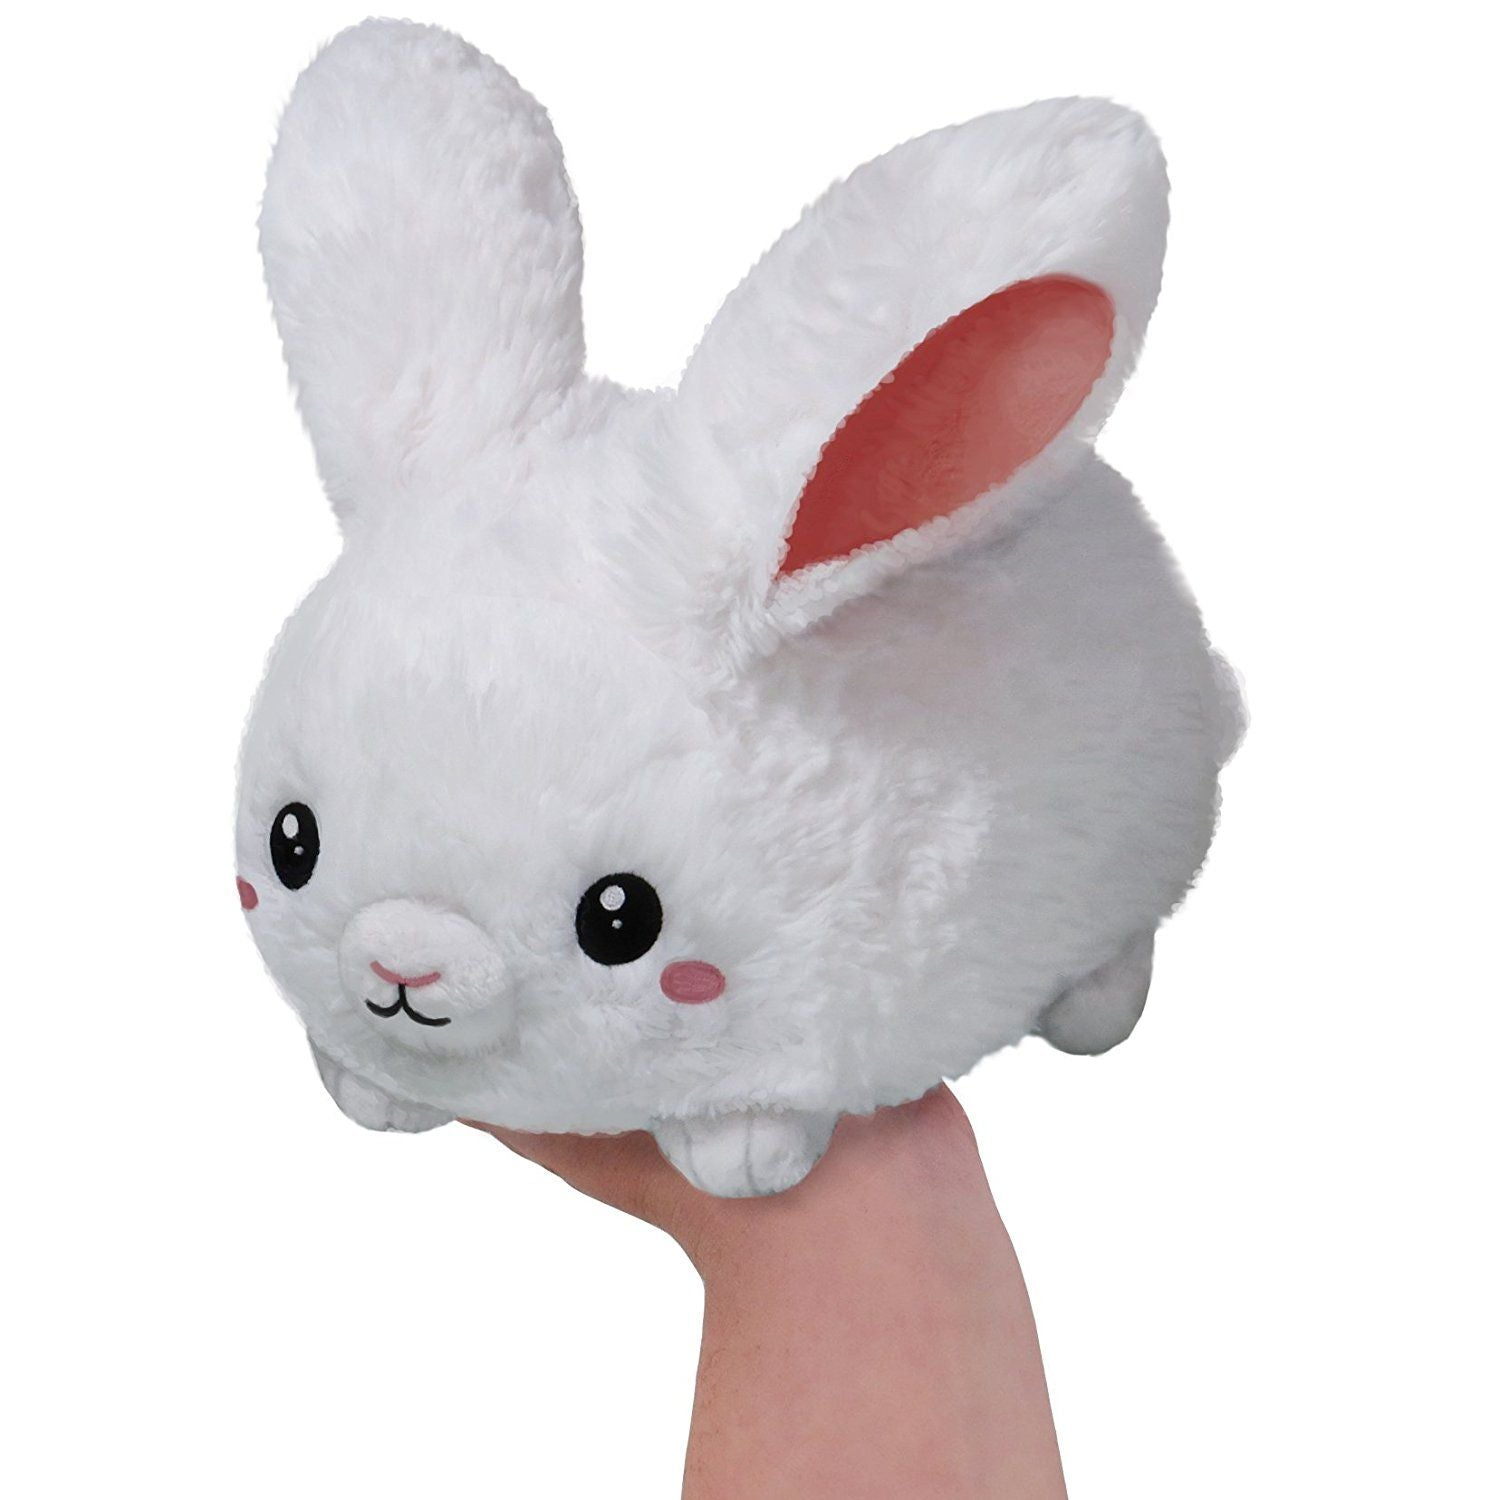 Mini Fluffy Bunny Stuffed Animal